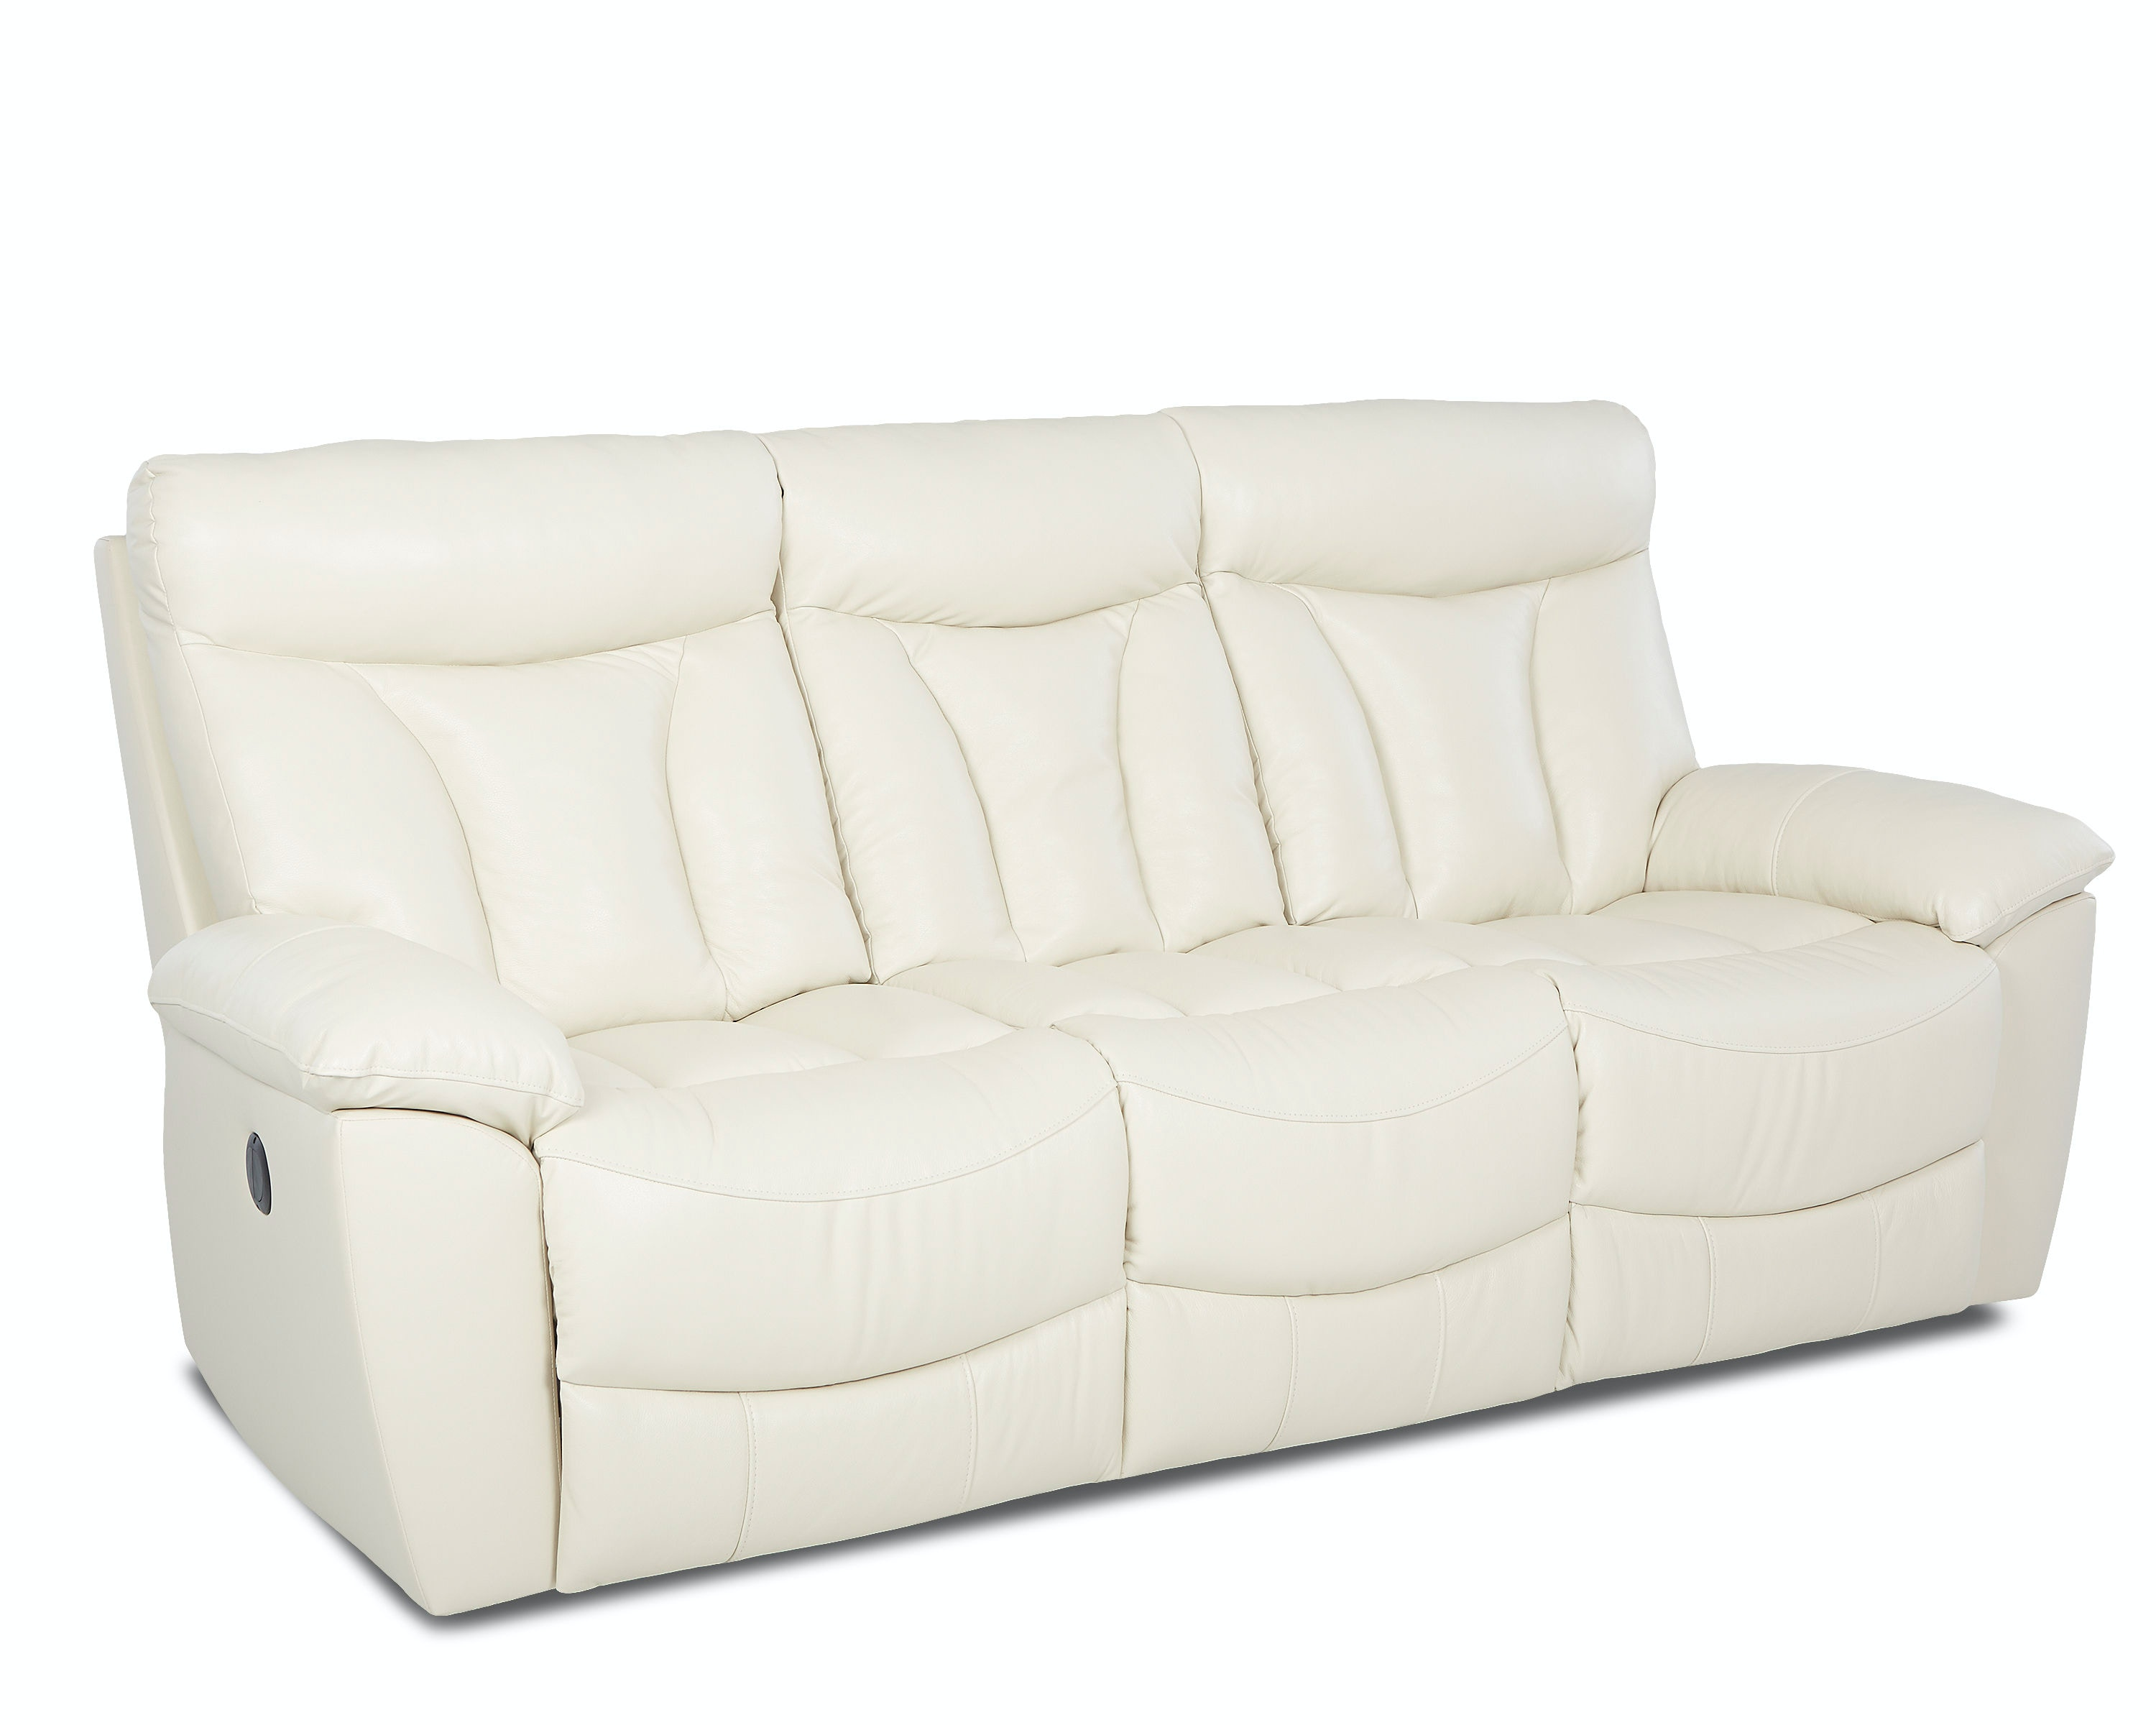 klaussner grand power reclining sofa love stanley india living room deluxe 63703 rs home furnishings